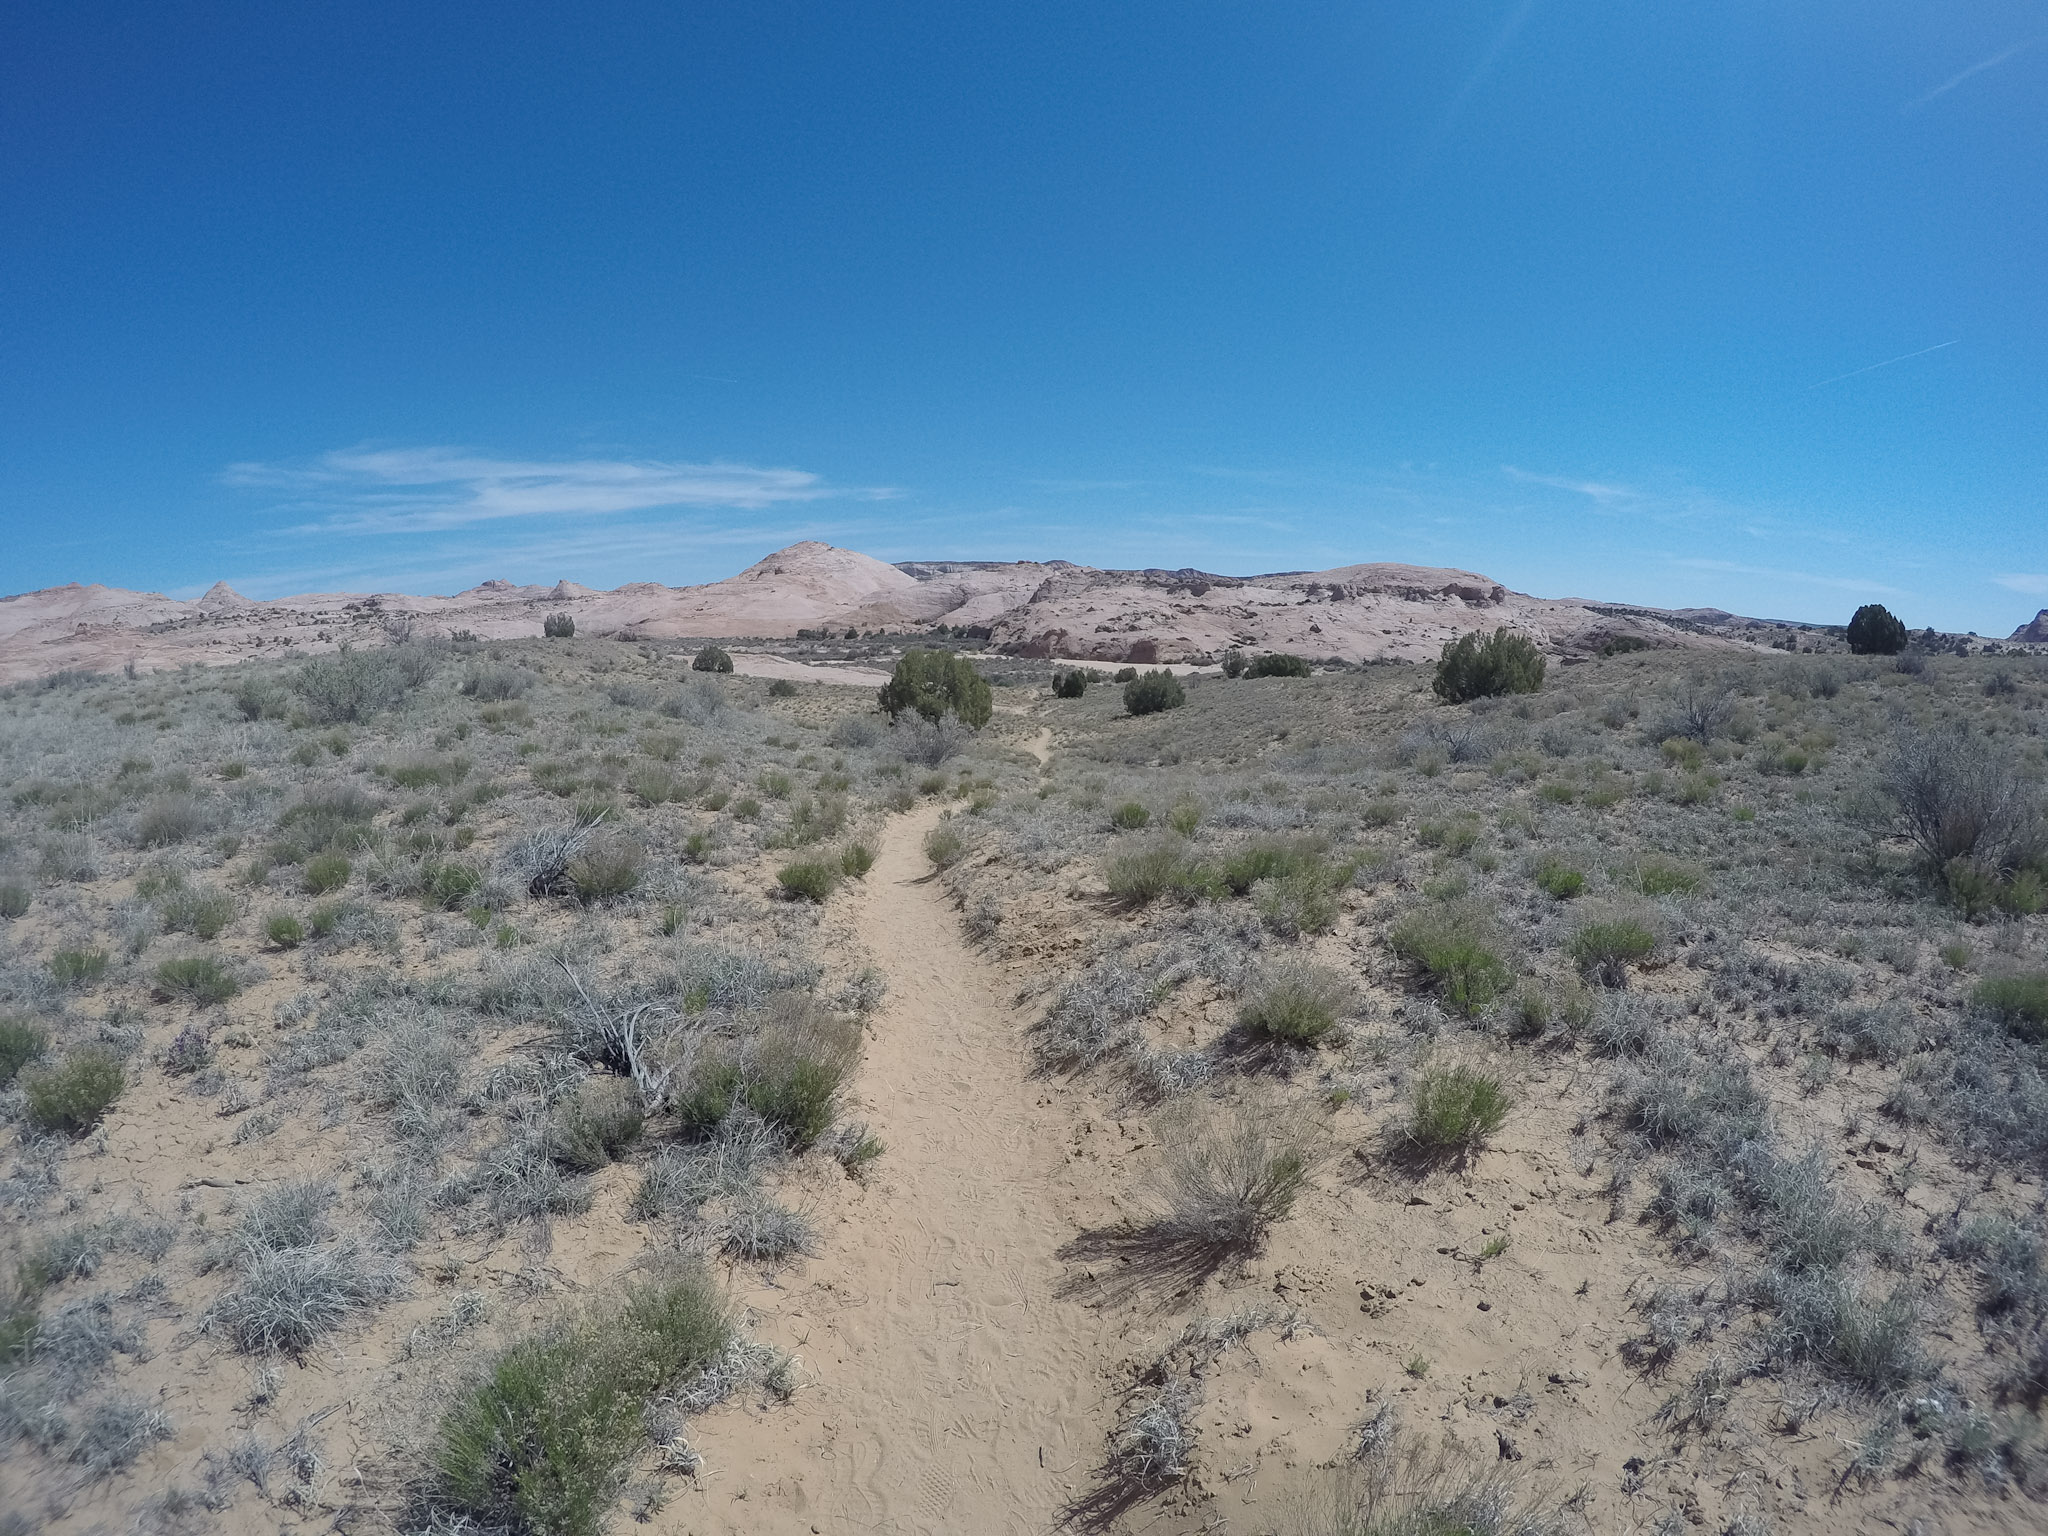 The trail winding through desert country - what most of the first half of the trail looks lie